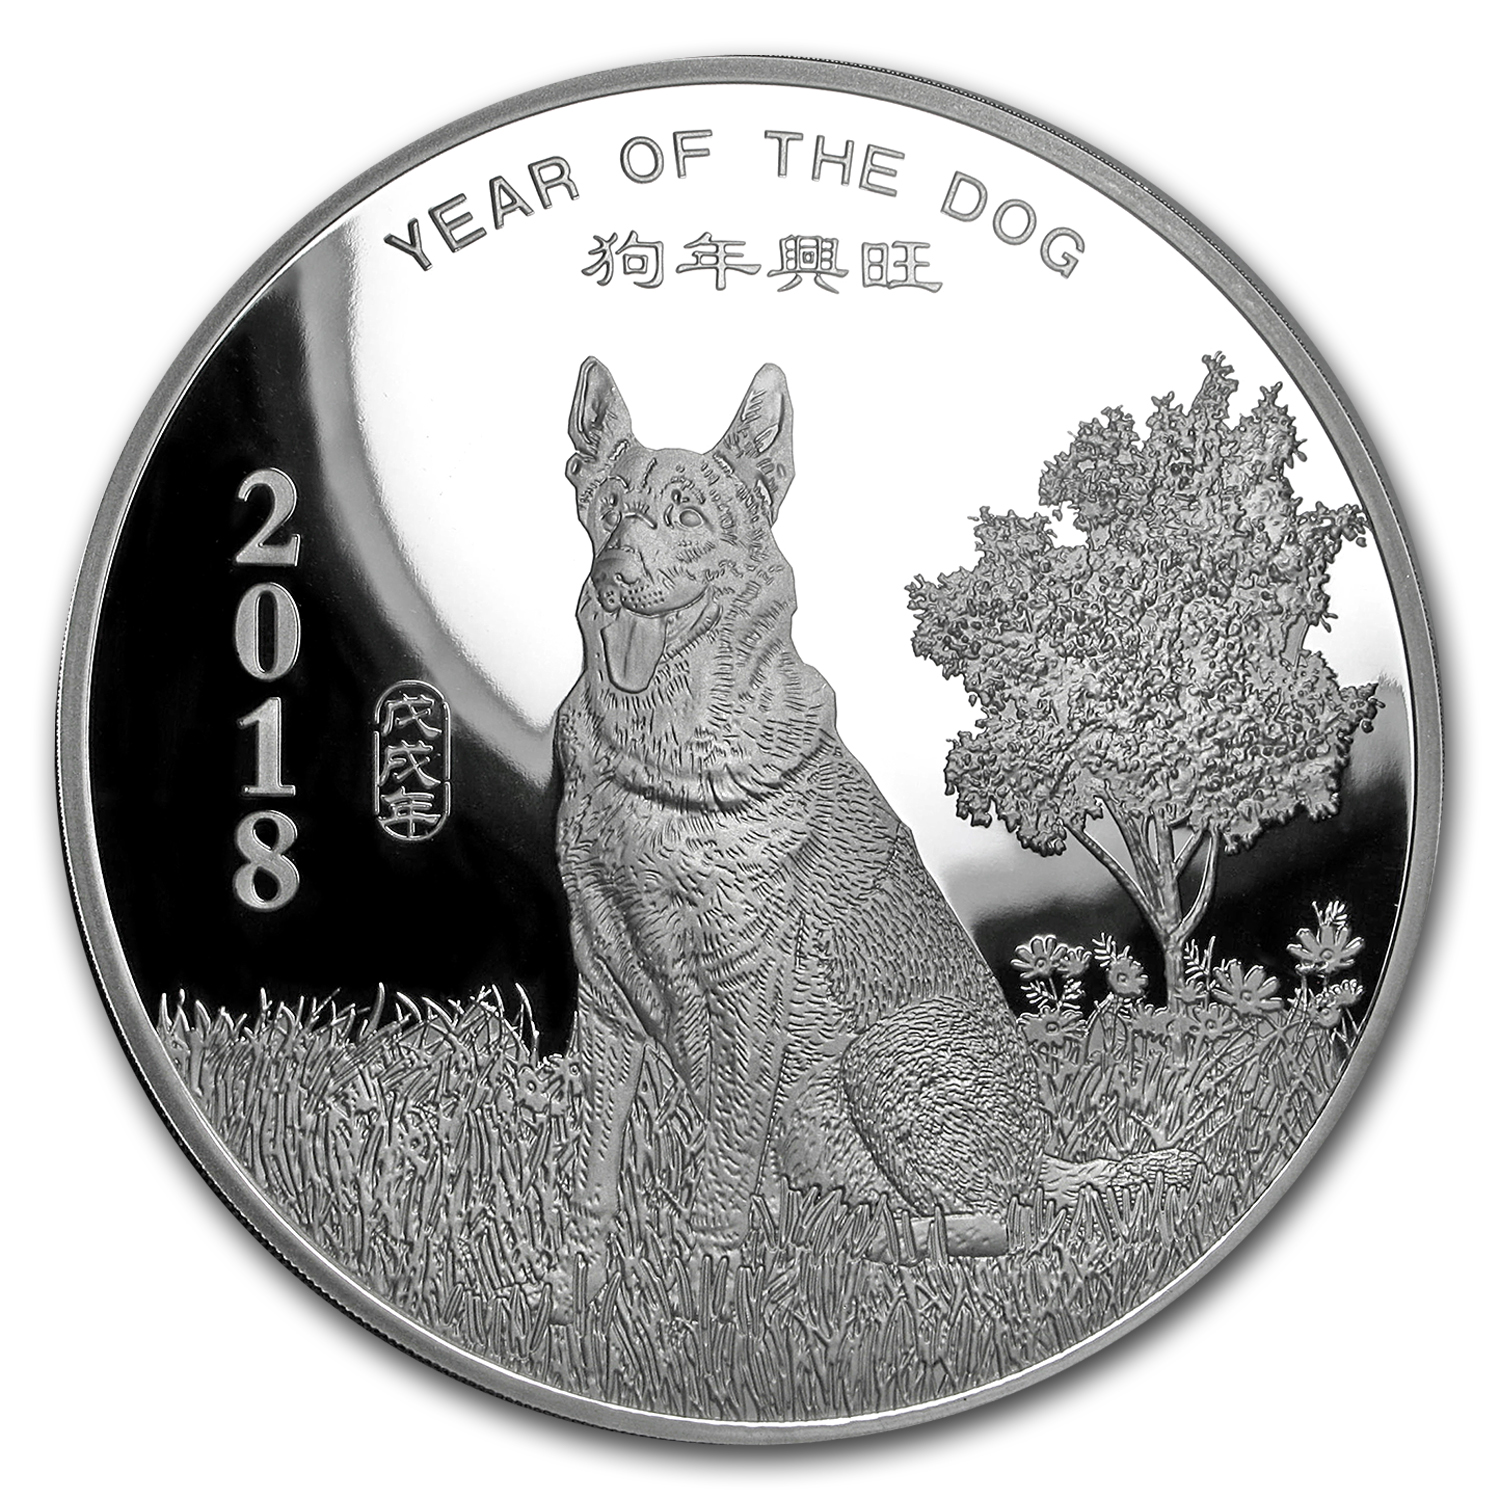 10 oz Silver Round - APMEX (2018 Year of the Dog)